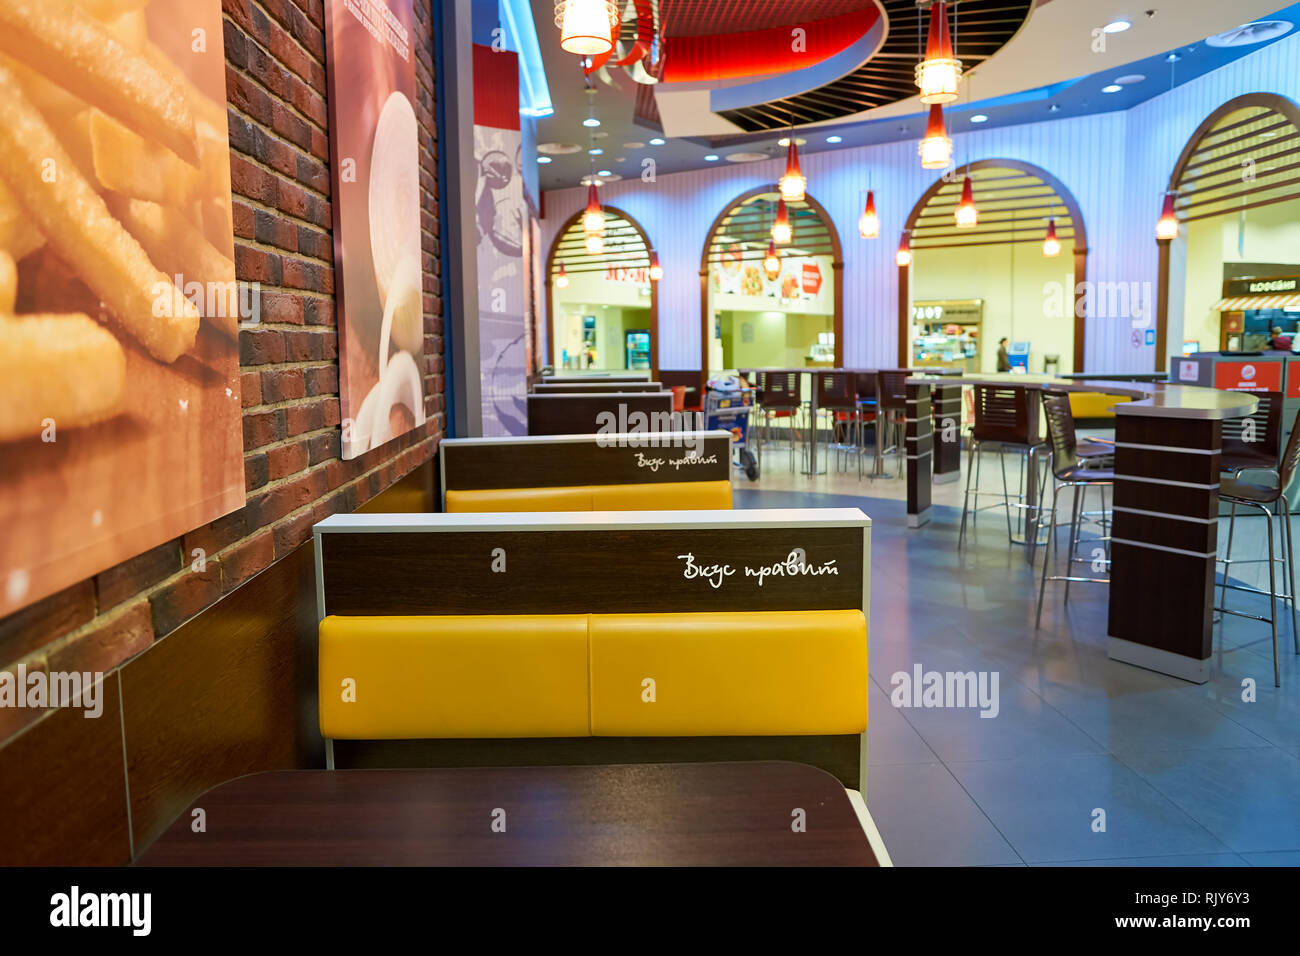 MOSCOW, RUSSIA - MARCH 13, 2016: inside of Burger King restaurant. Burger King, often abbreviated as BK, is an American global chain of hamburger fast - Stock Image